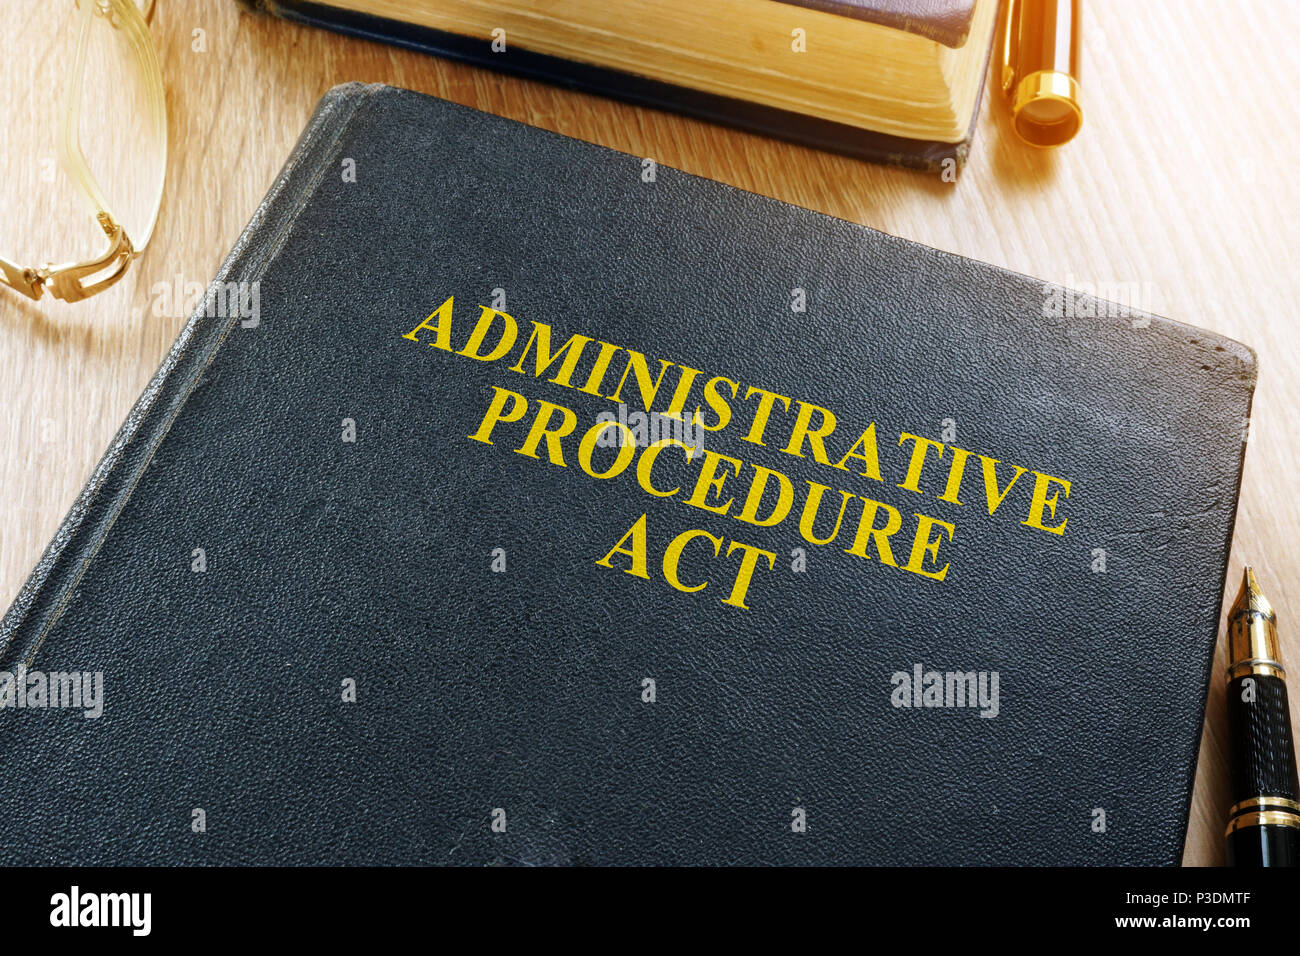 The Administrative Procedure Act (APA) on a desk. - Stock Image